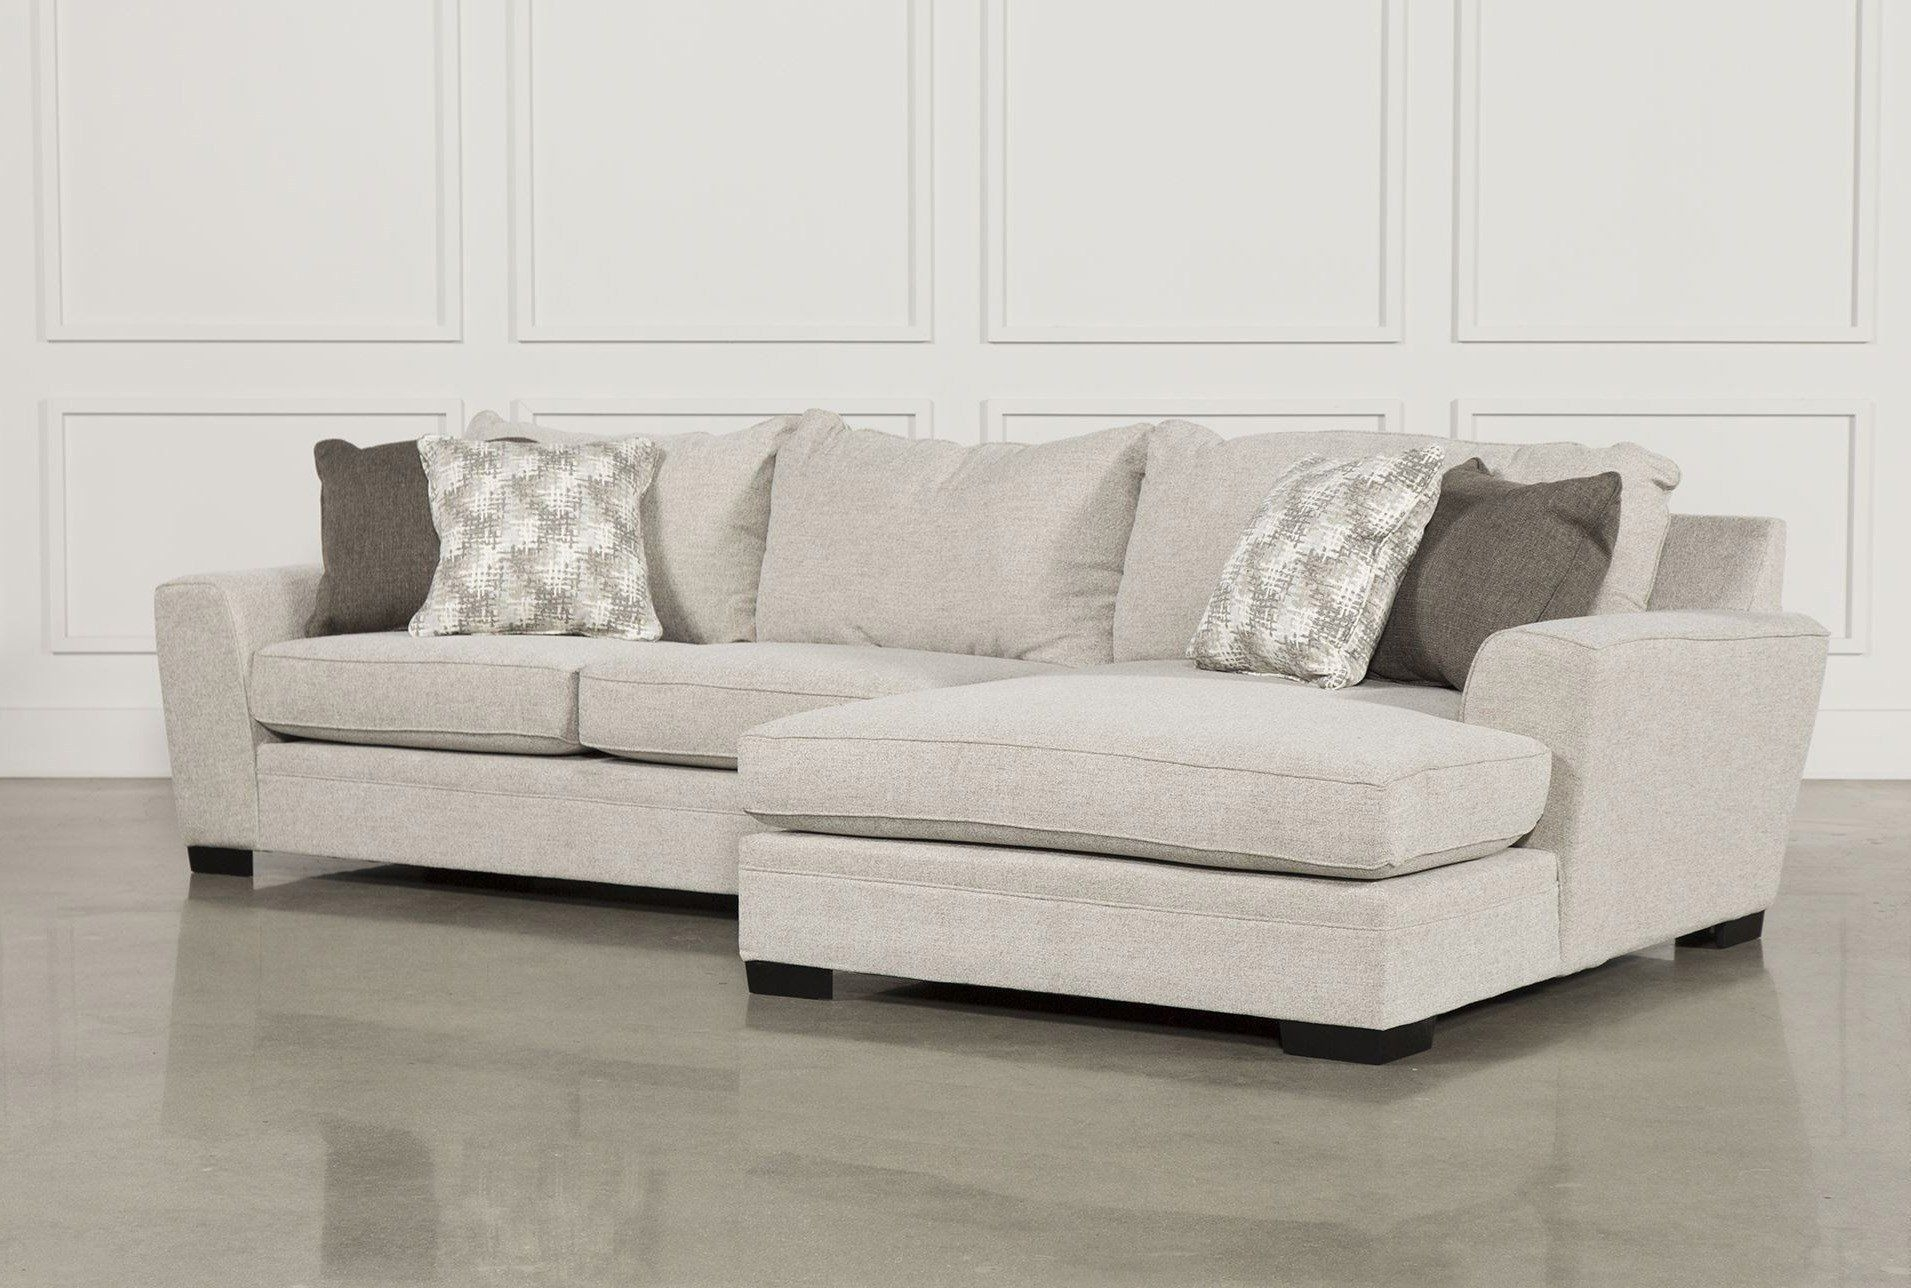 16 Luxury Serta Cooling Memoryfil Pillow | Beautiful Pillow Design With Aquarius Light Grey 2 Piece Sectionals With Laf Chaise (Gallery 15 of 30)